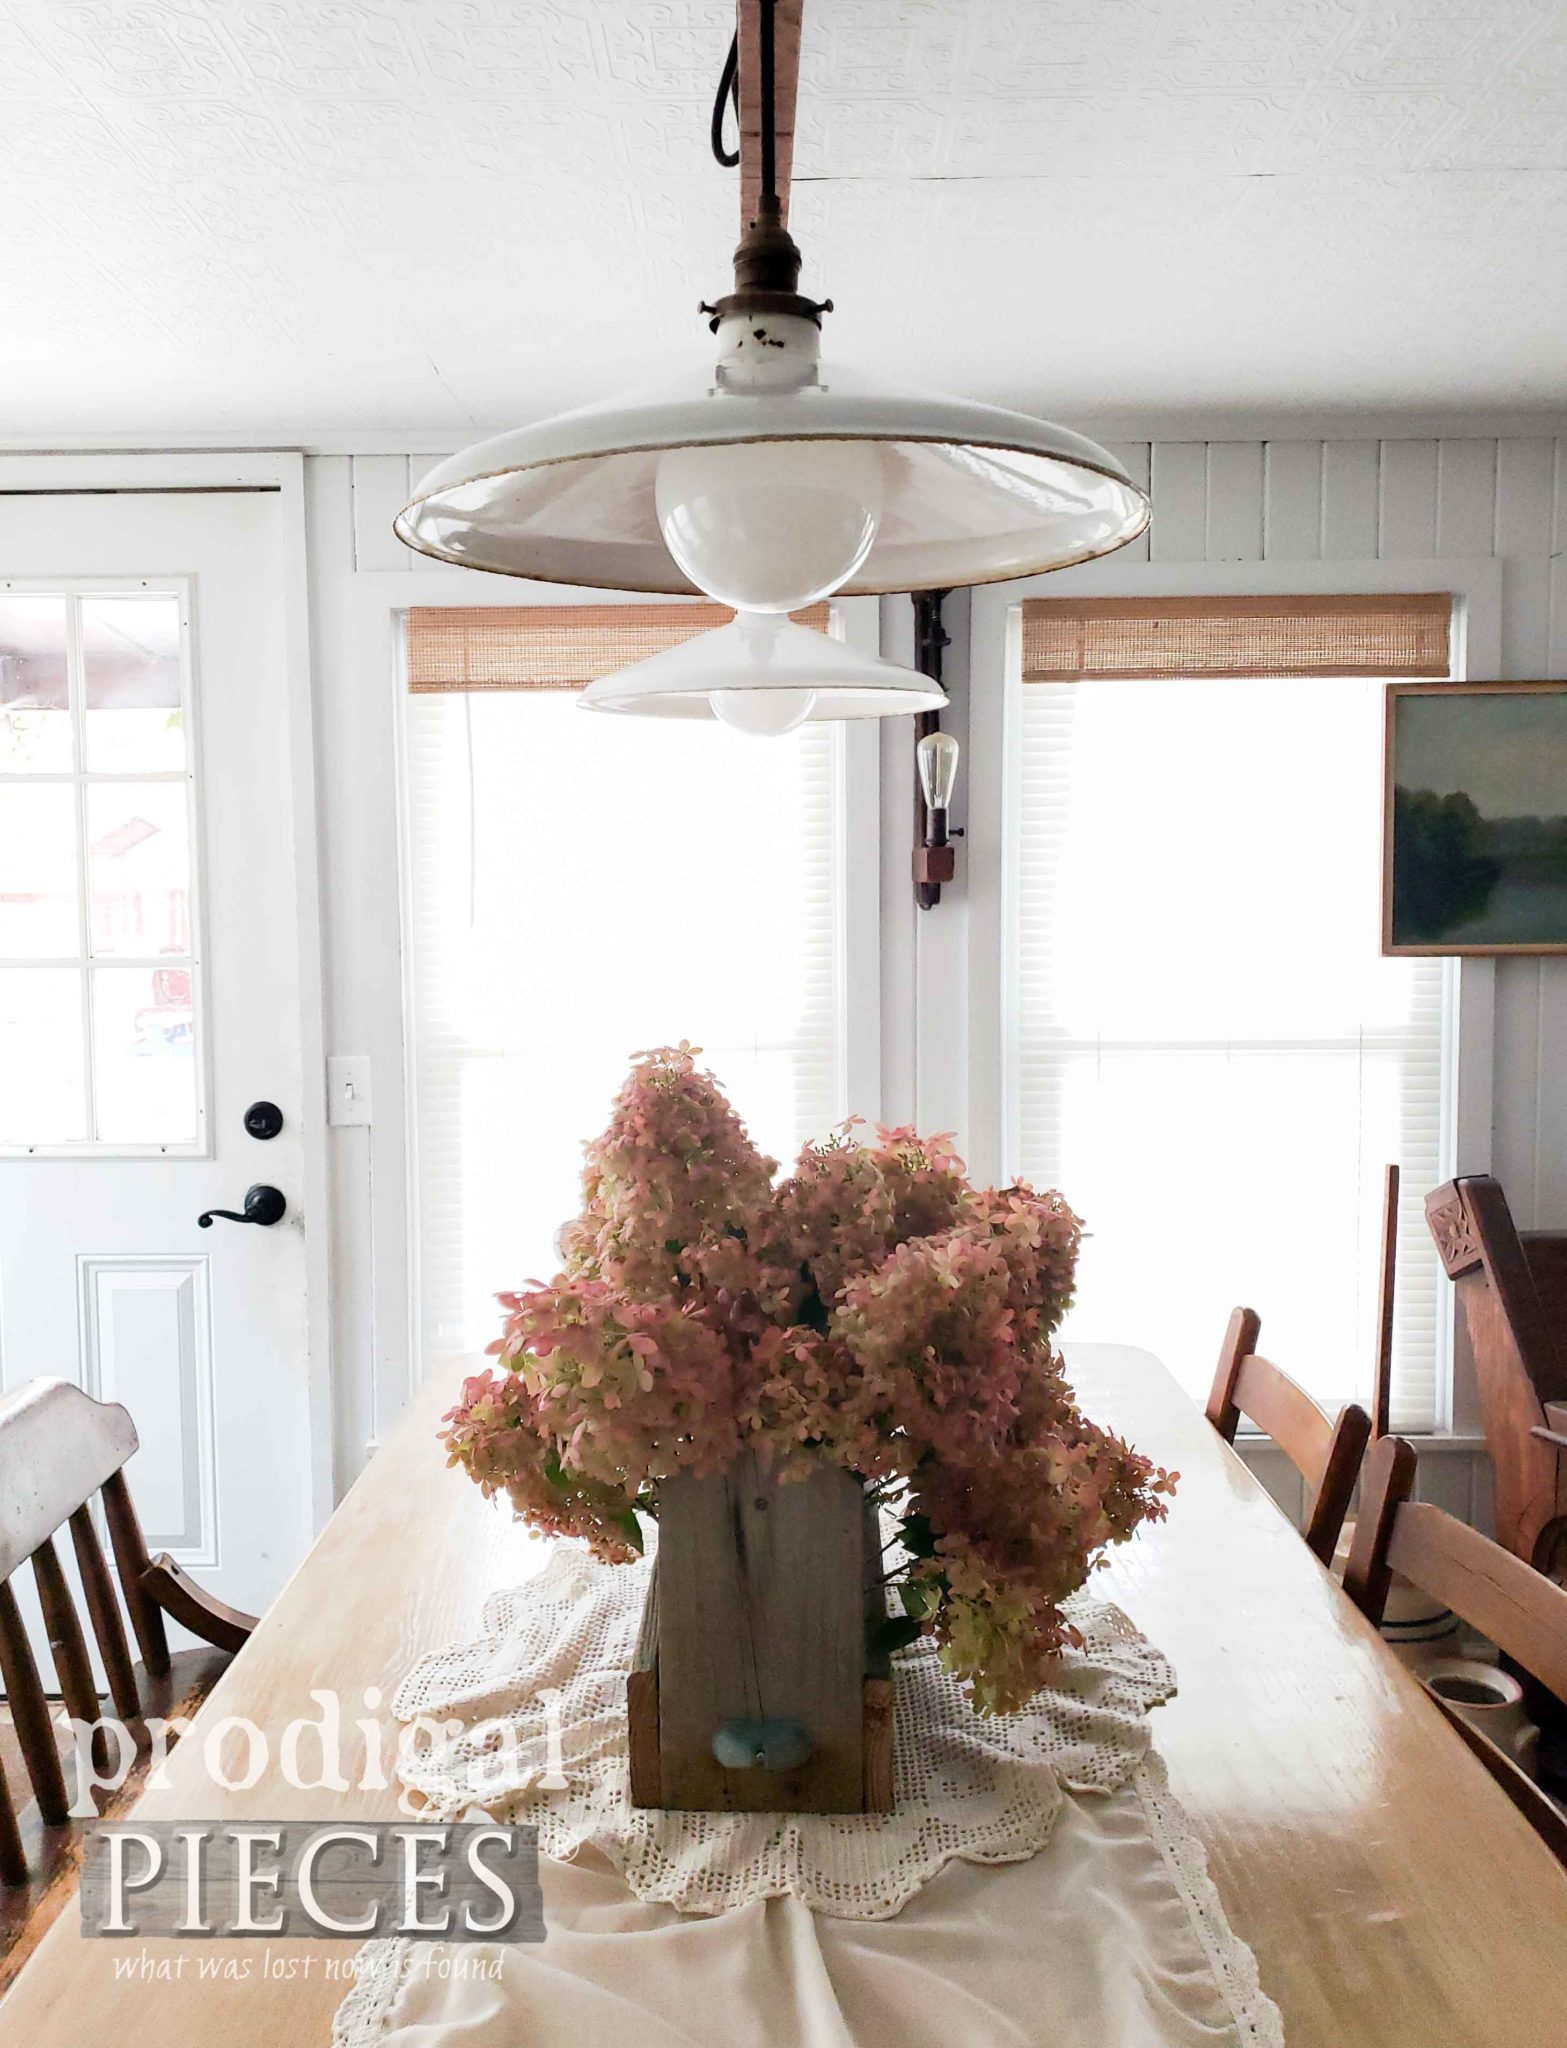 Rustic Farmhouse Dining Table with Enamel Lighting and Hydrangeas in Wood Tote by Prodigal Pieces | prodigalpieces.com